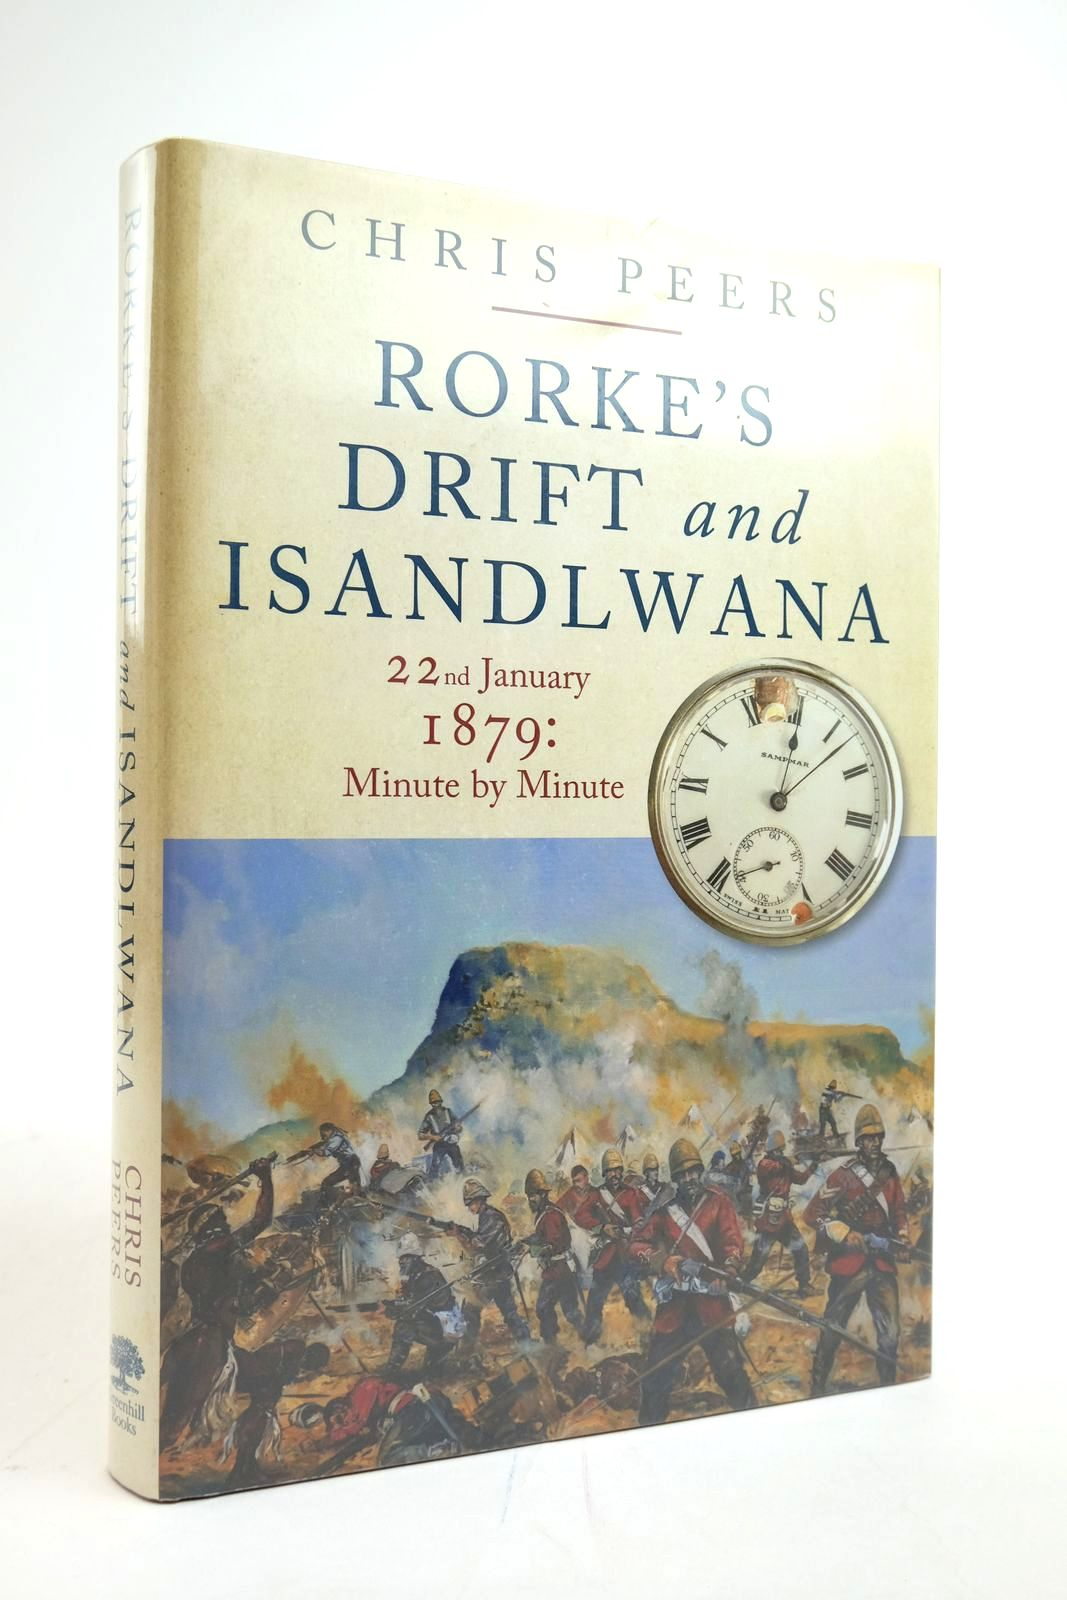 Photo of RORKE'S DRIFT AND ISANDLWANA 22ND JANUARY 1879: MINUTE BY MINUTE- Stock Number: 2135380